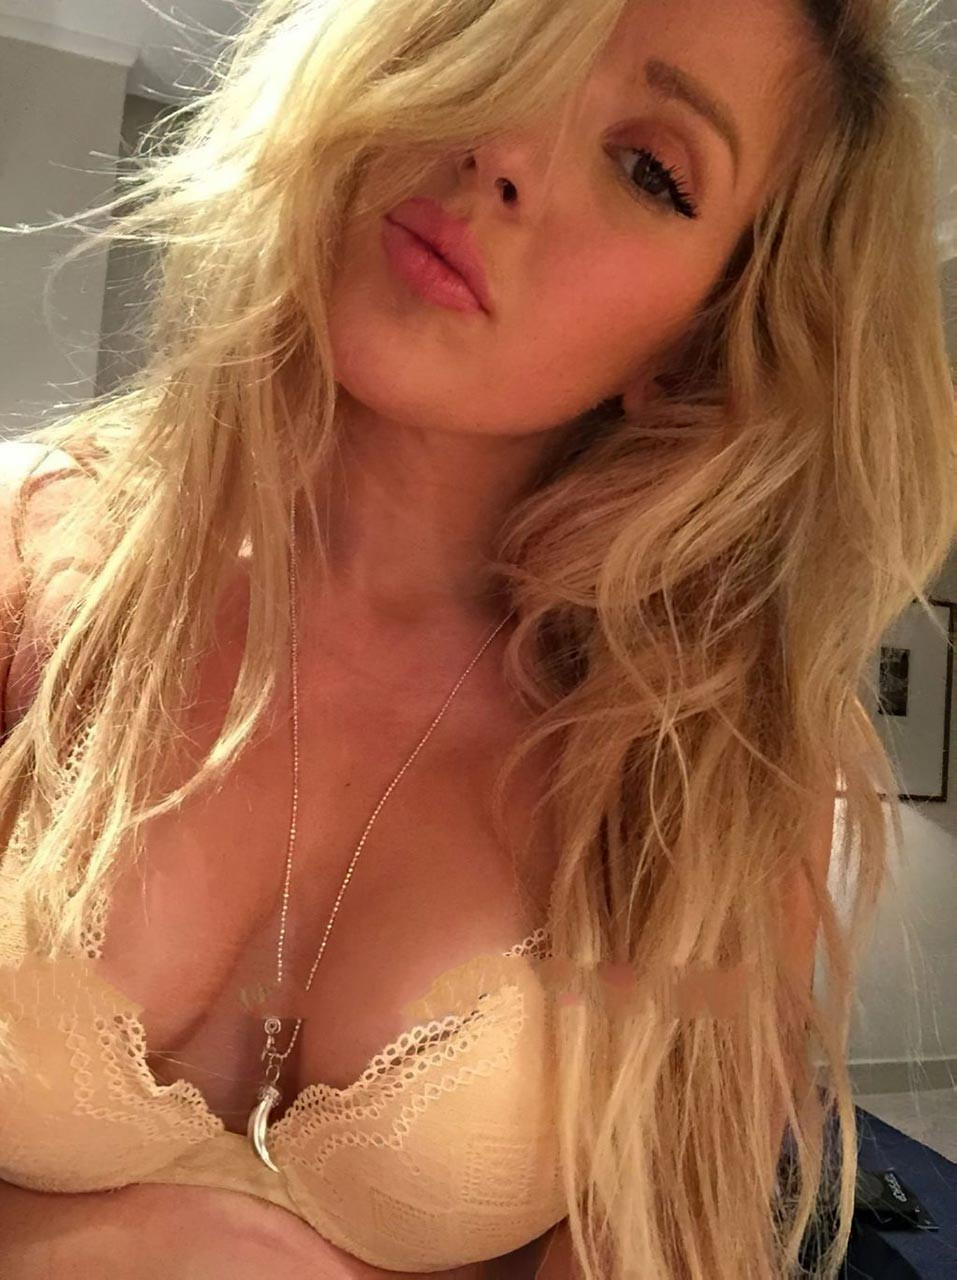 Ellie Goulding Leaked Nude Naked Sexy 1 fappenings.com